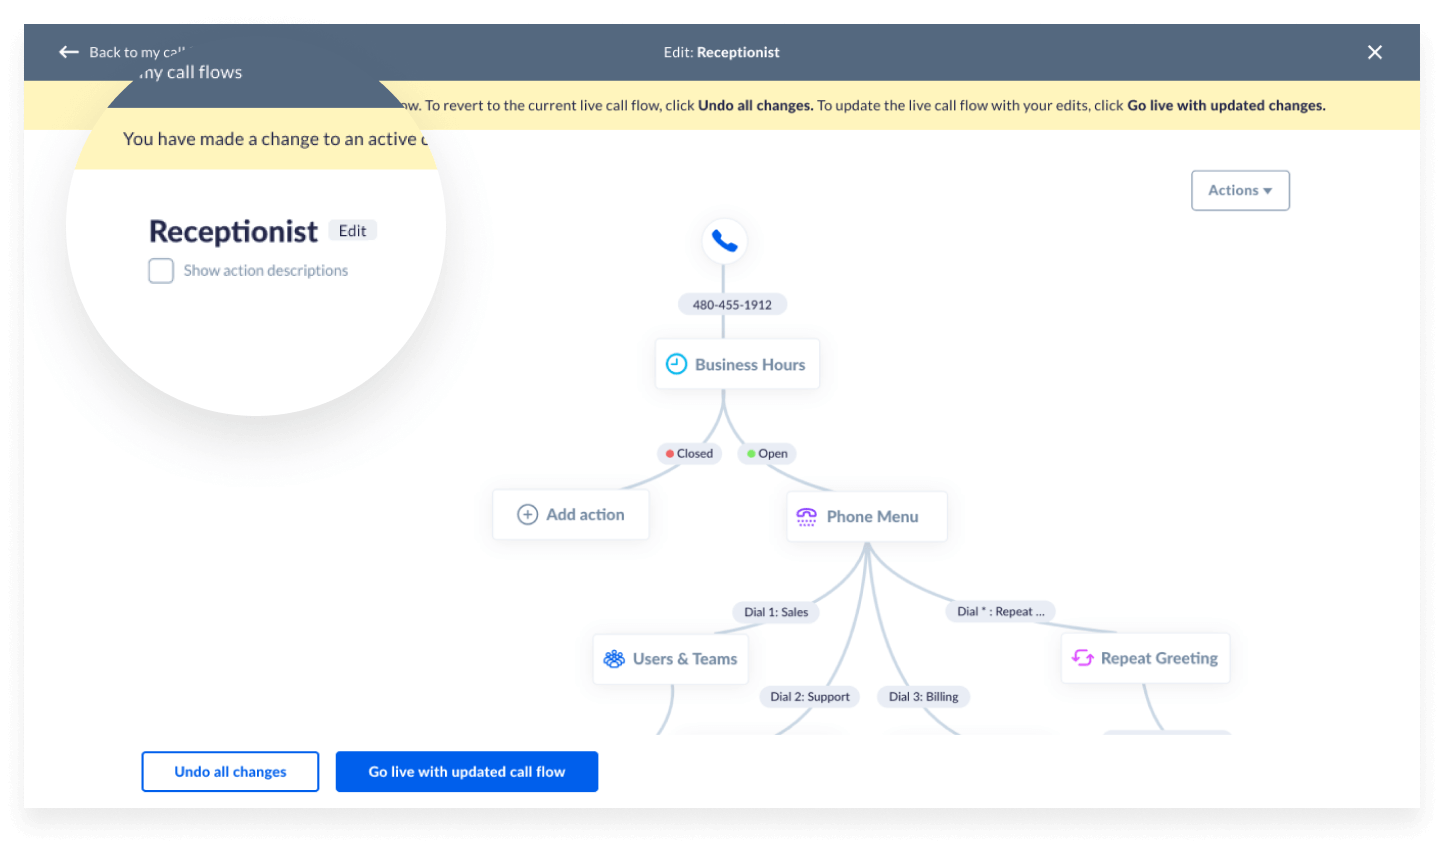 Screenshot of changing call flows in Nextiva